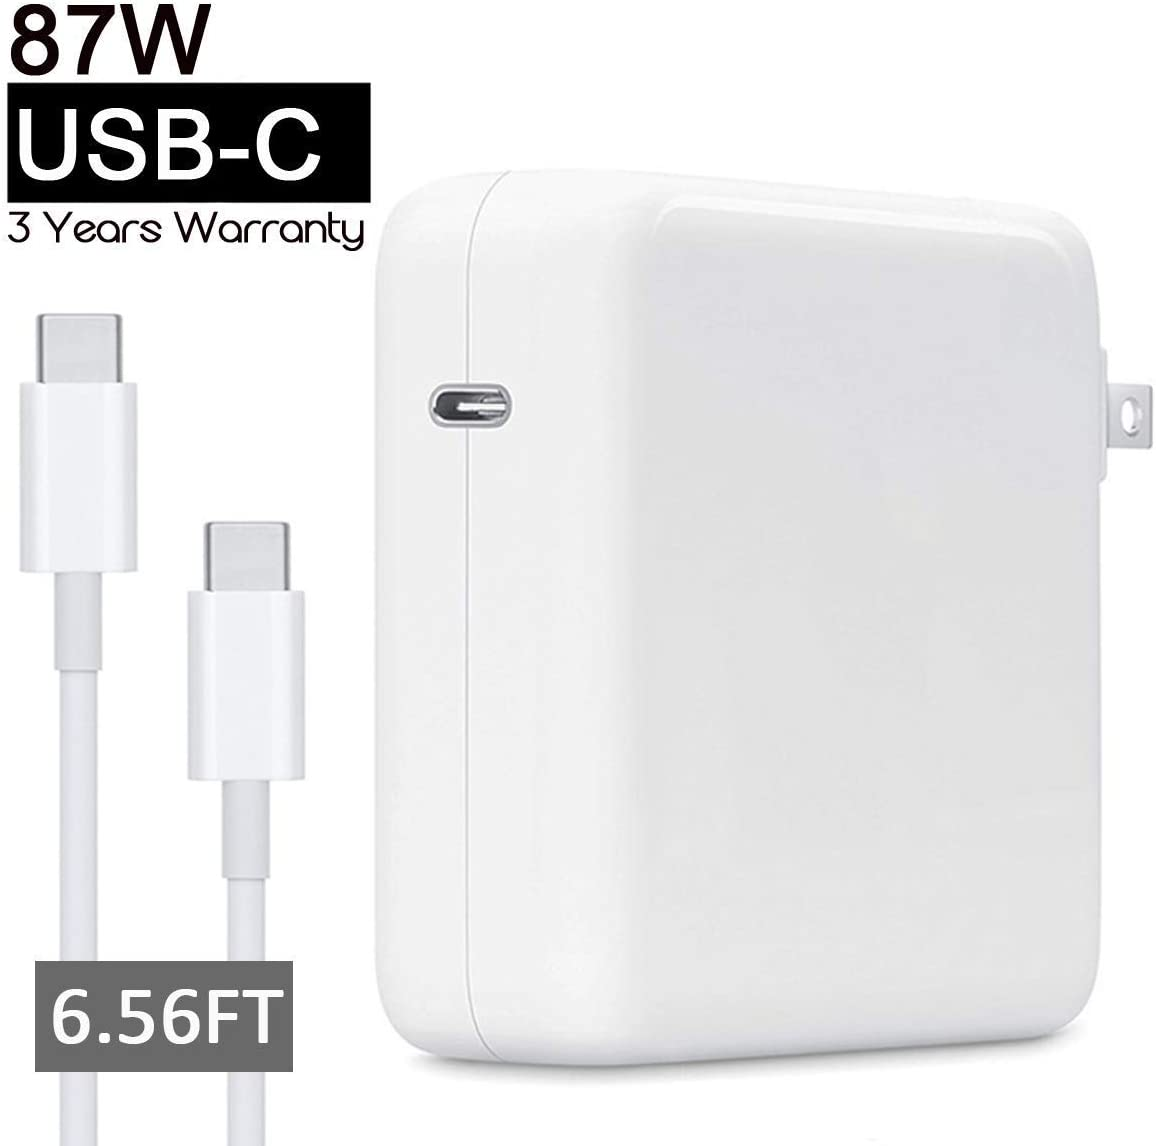 87W Power Adapter Compatible with Apple MacBook Pro Air 2018 USB C Charger 15 13 inch Include Charge Cable(2M)